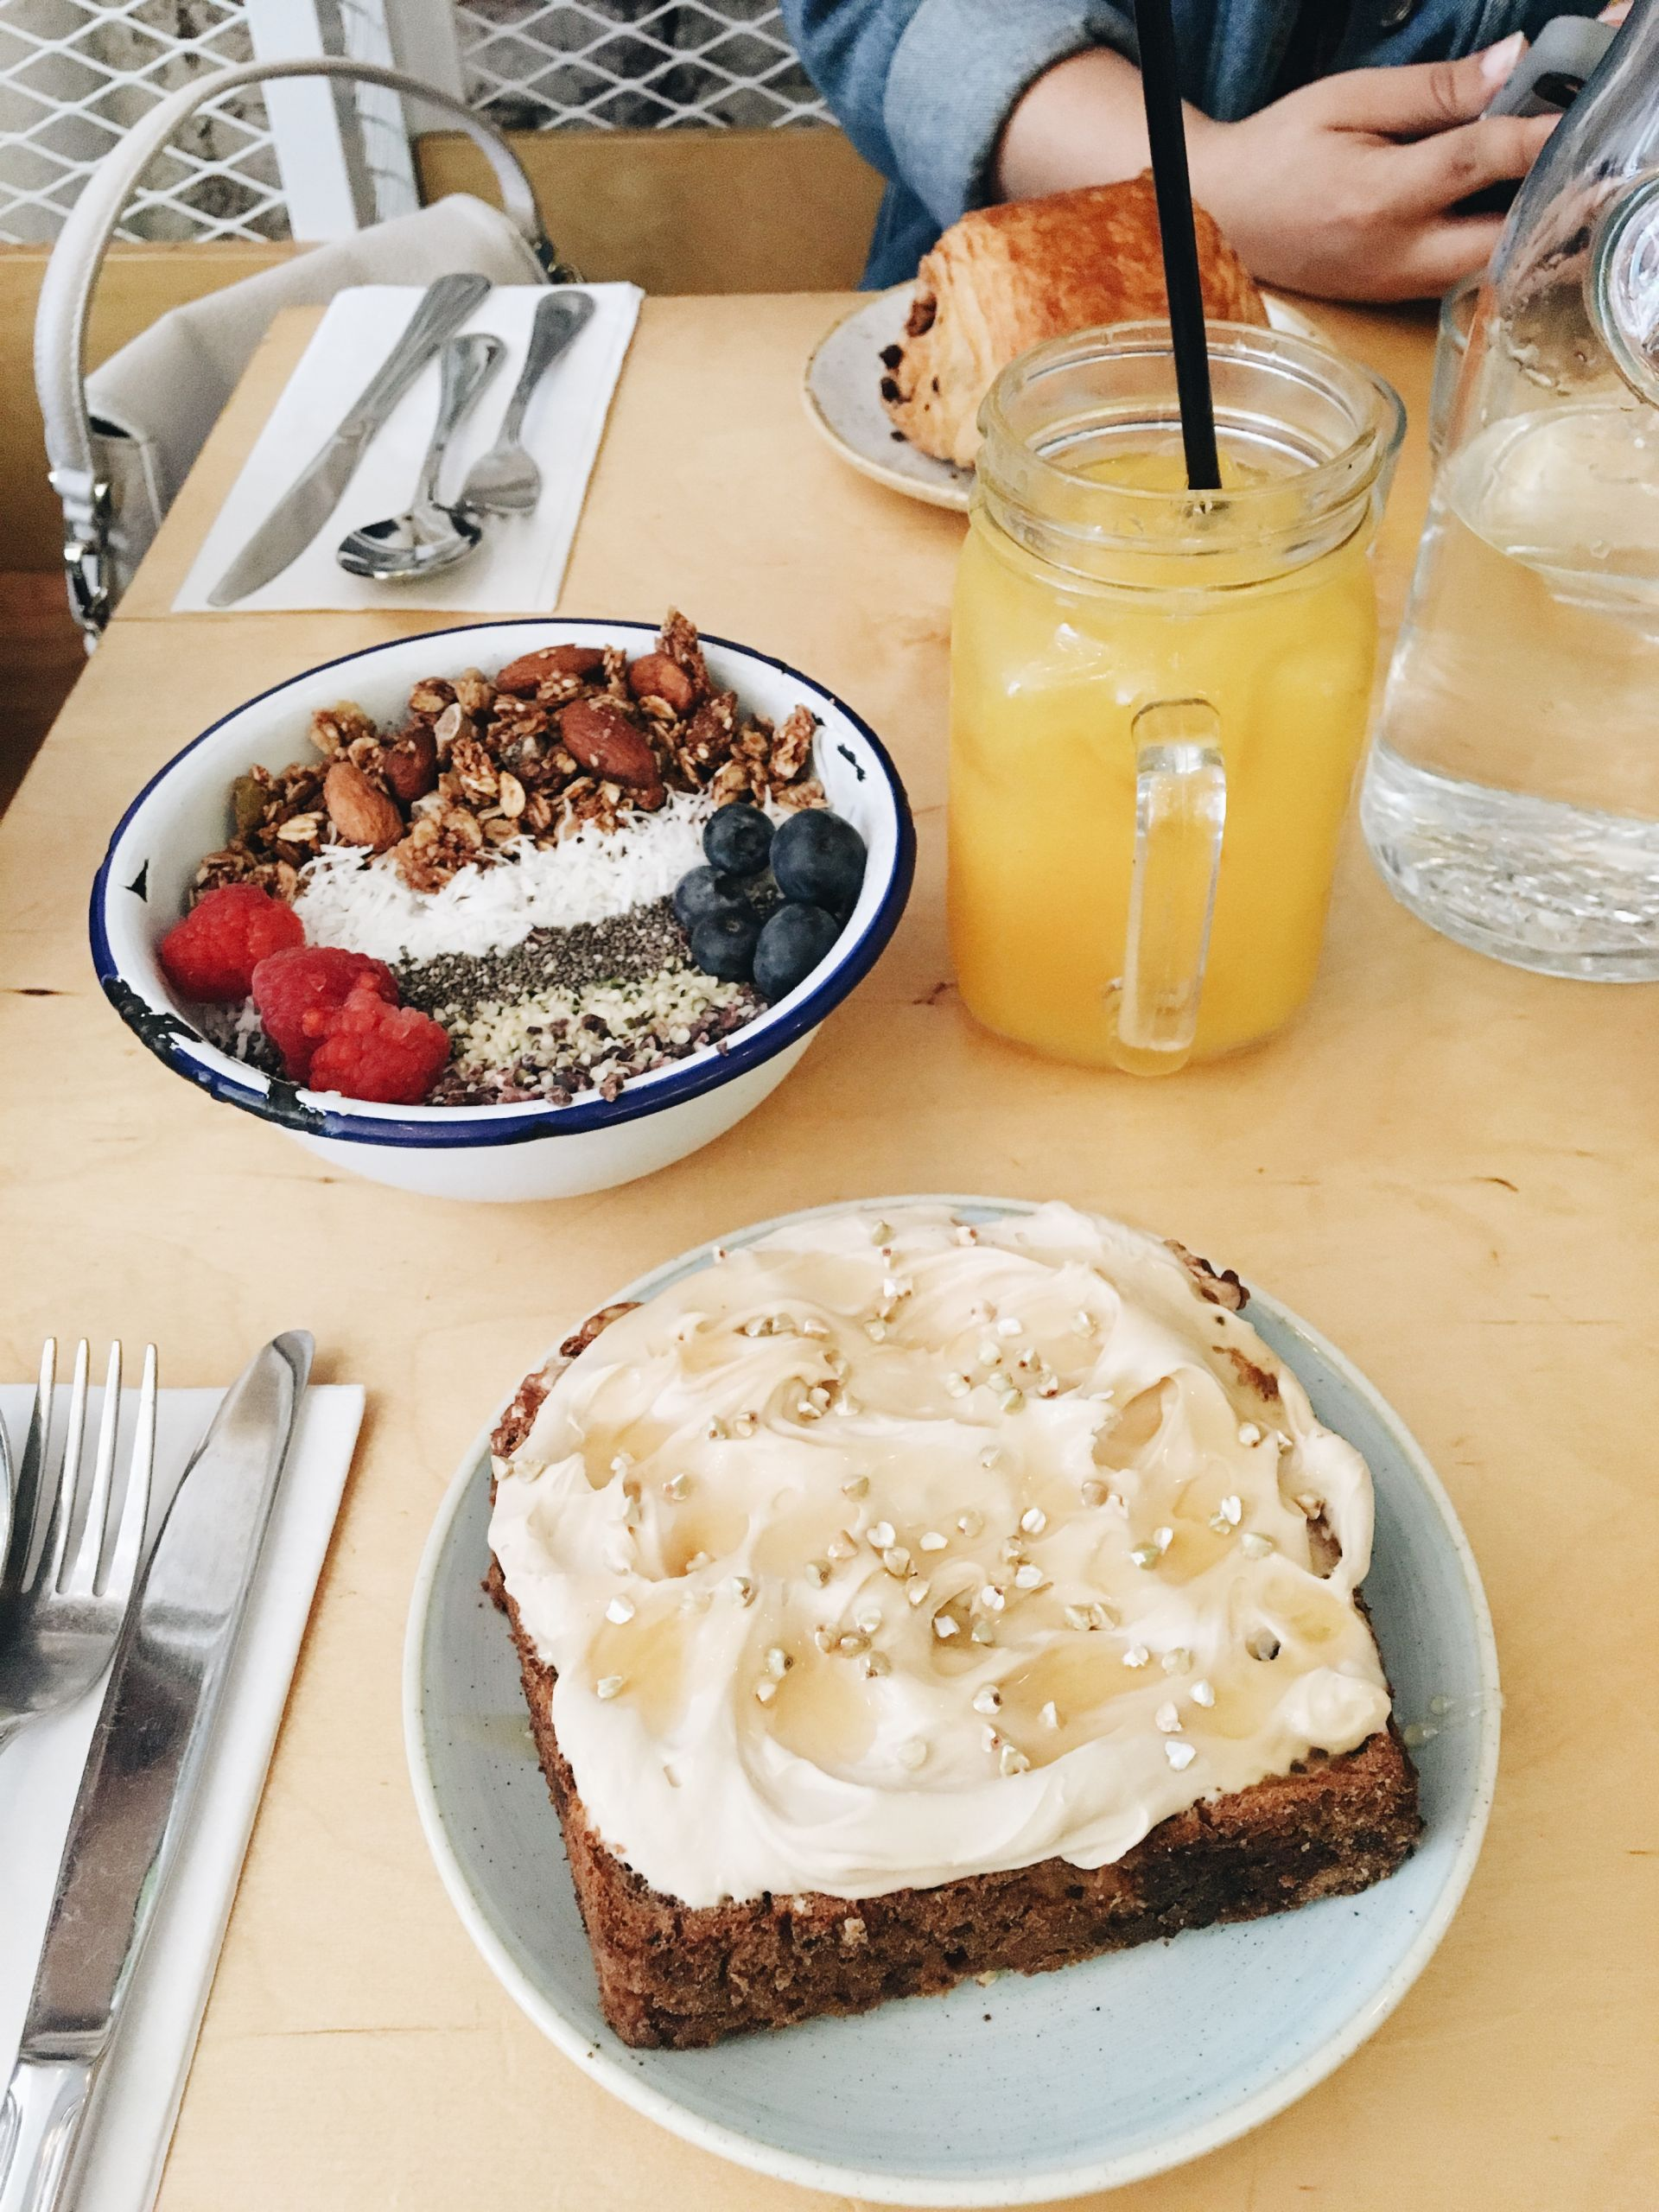 Banana Bread with Espresso Mascarpone, Acai Bowl, Orange Juice, Two Hands | Where To Eat in NYC